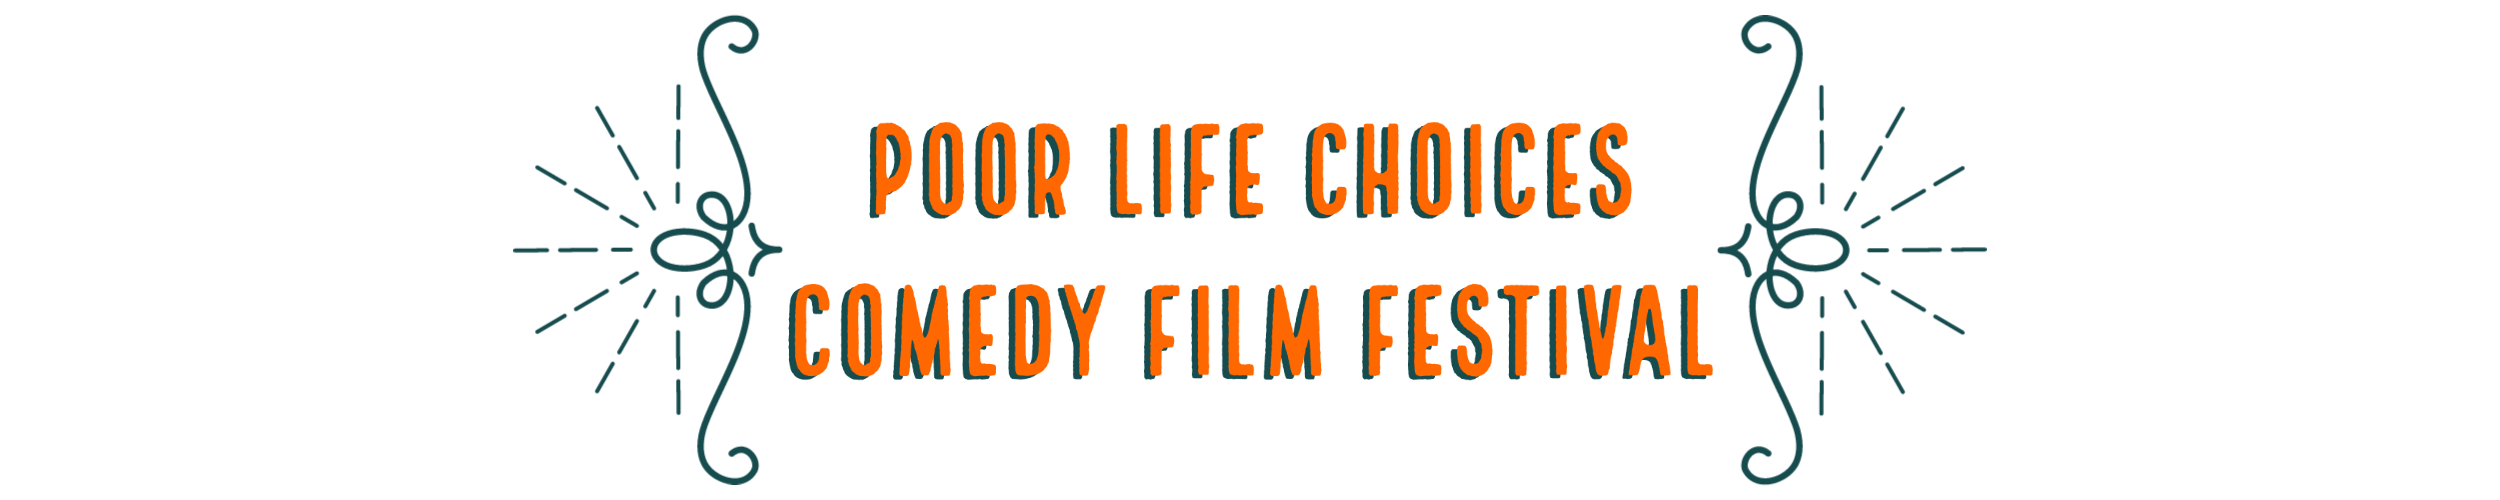 Poor Life Choices Comedy Film Festival